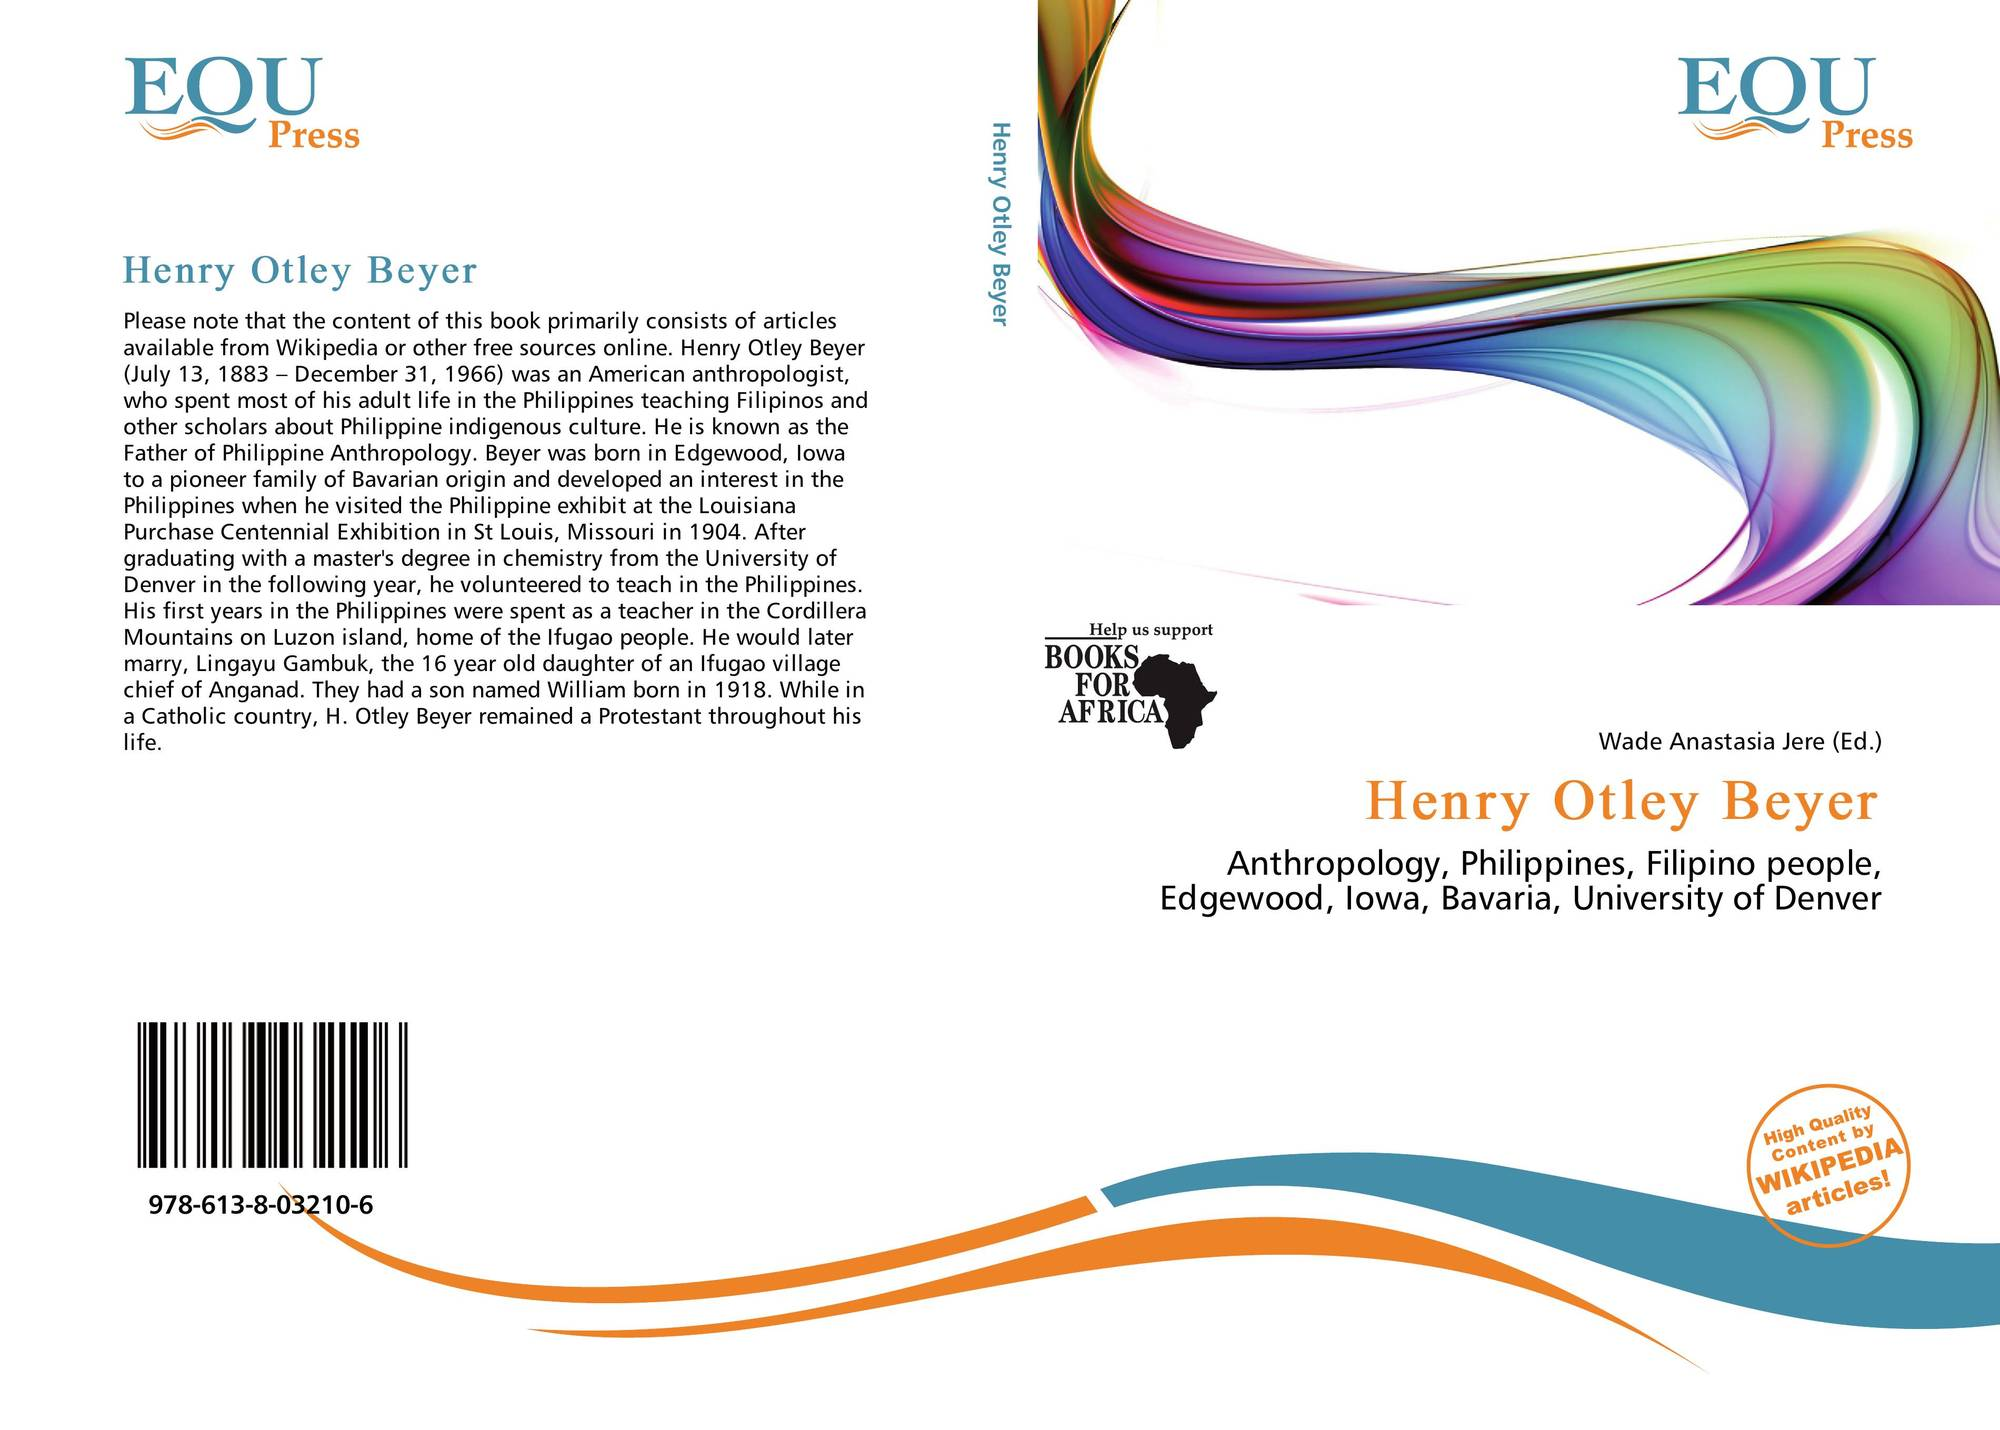 migration theory henry otley beyer Early inhabitants of the philippine islands - henry otley beyer's migration theory and felipe landa jocano's evolution theory.